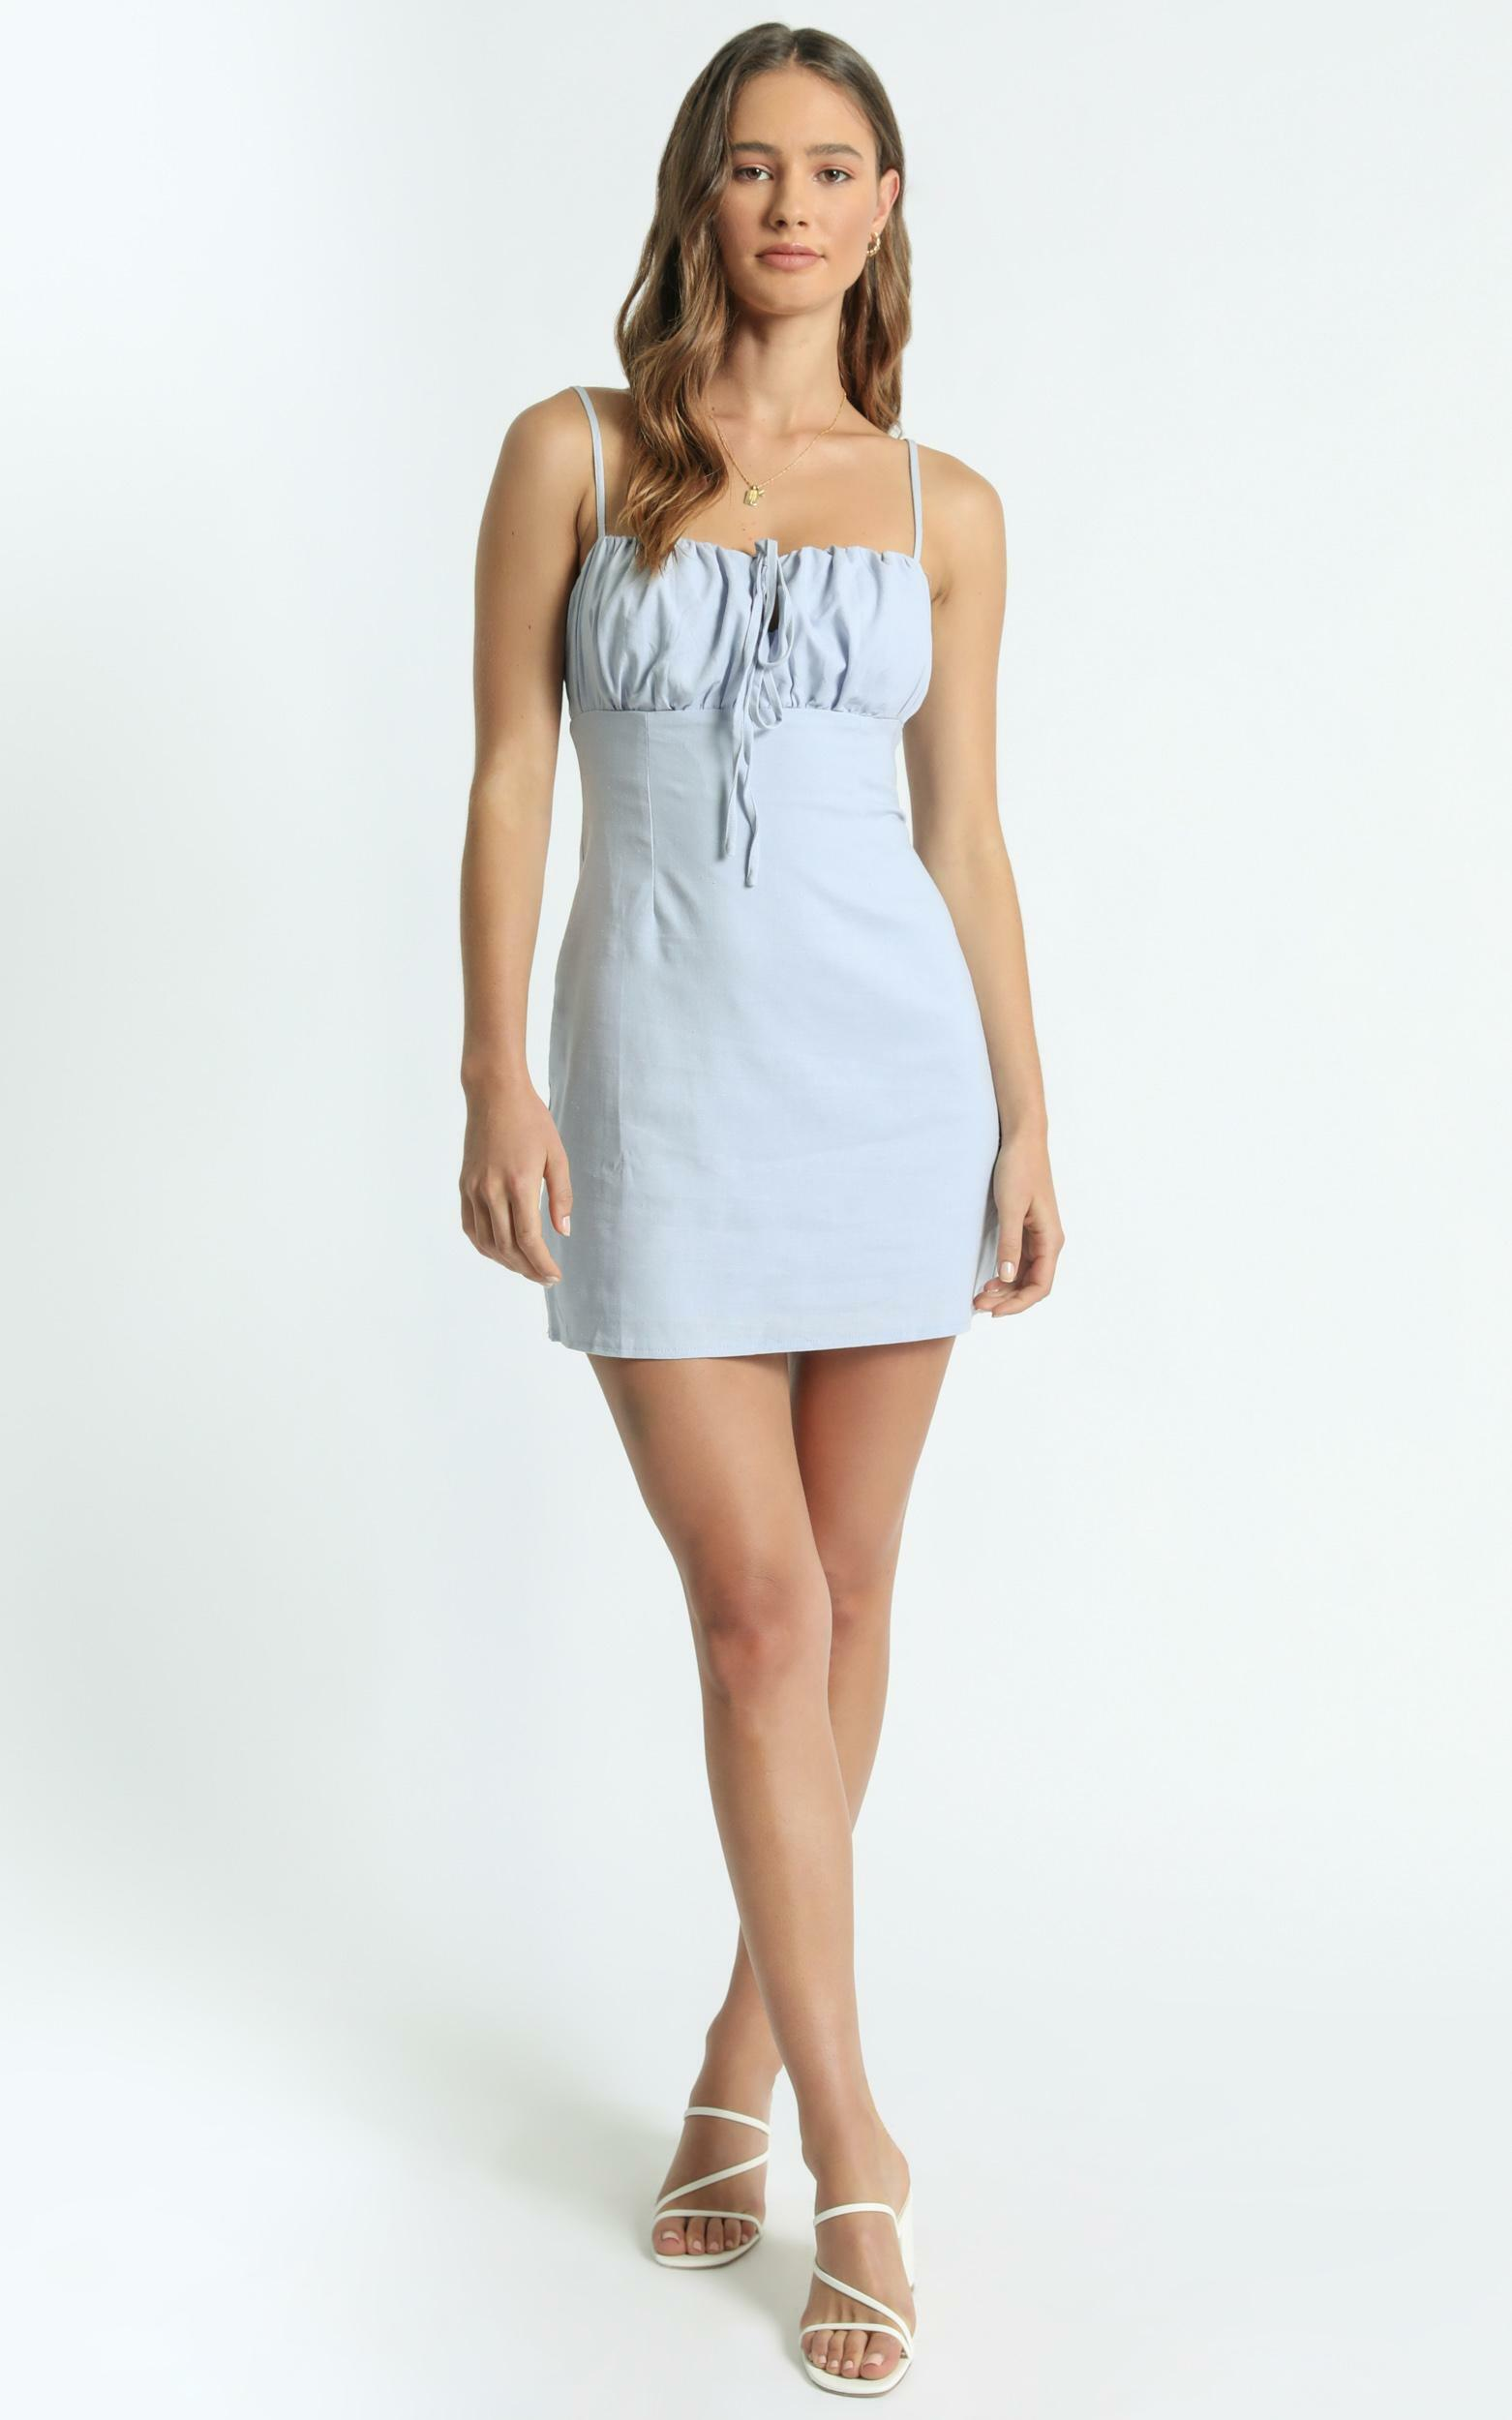 Break Free With Me Dress in Blue Linen Look - 10 (M), Blue, hi-res image number null